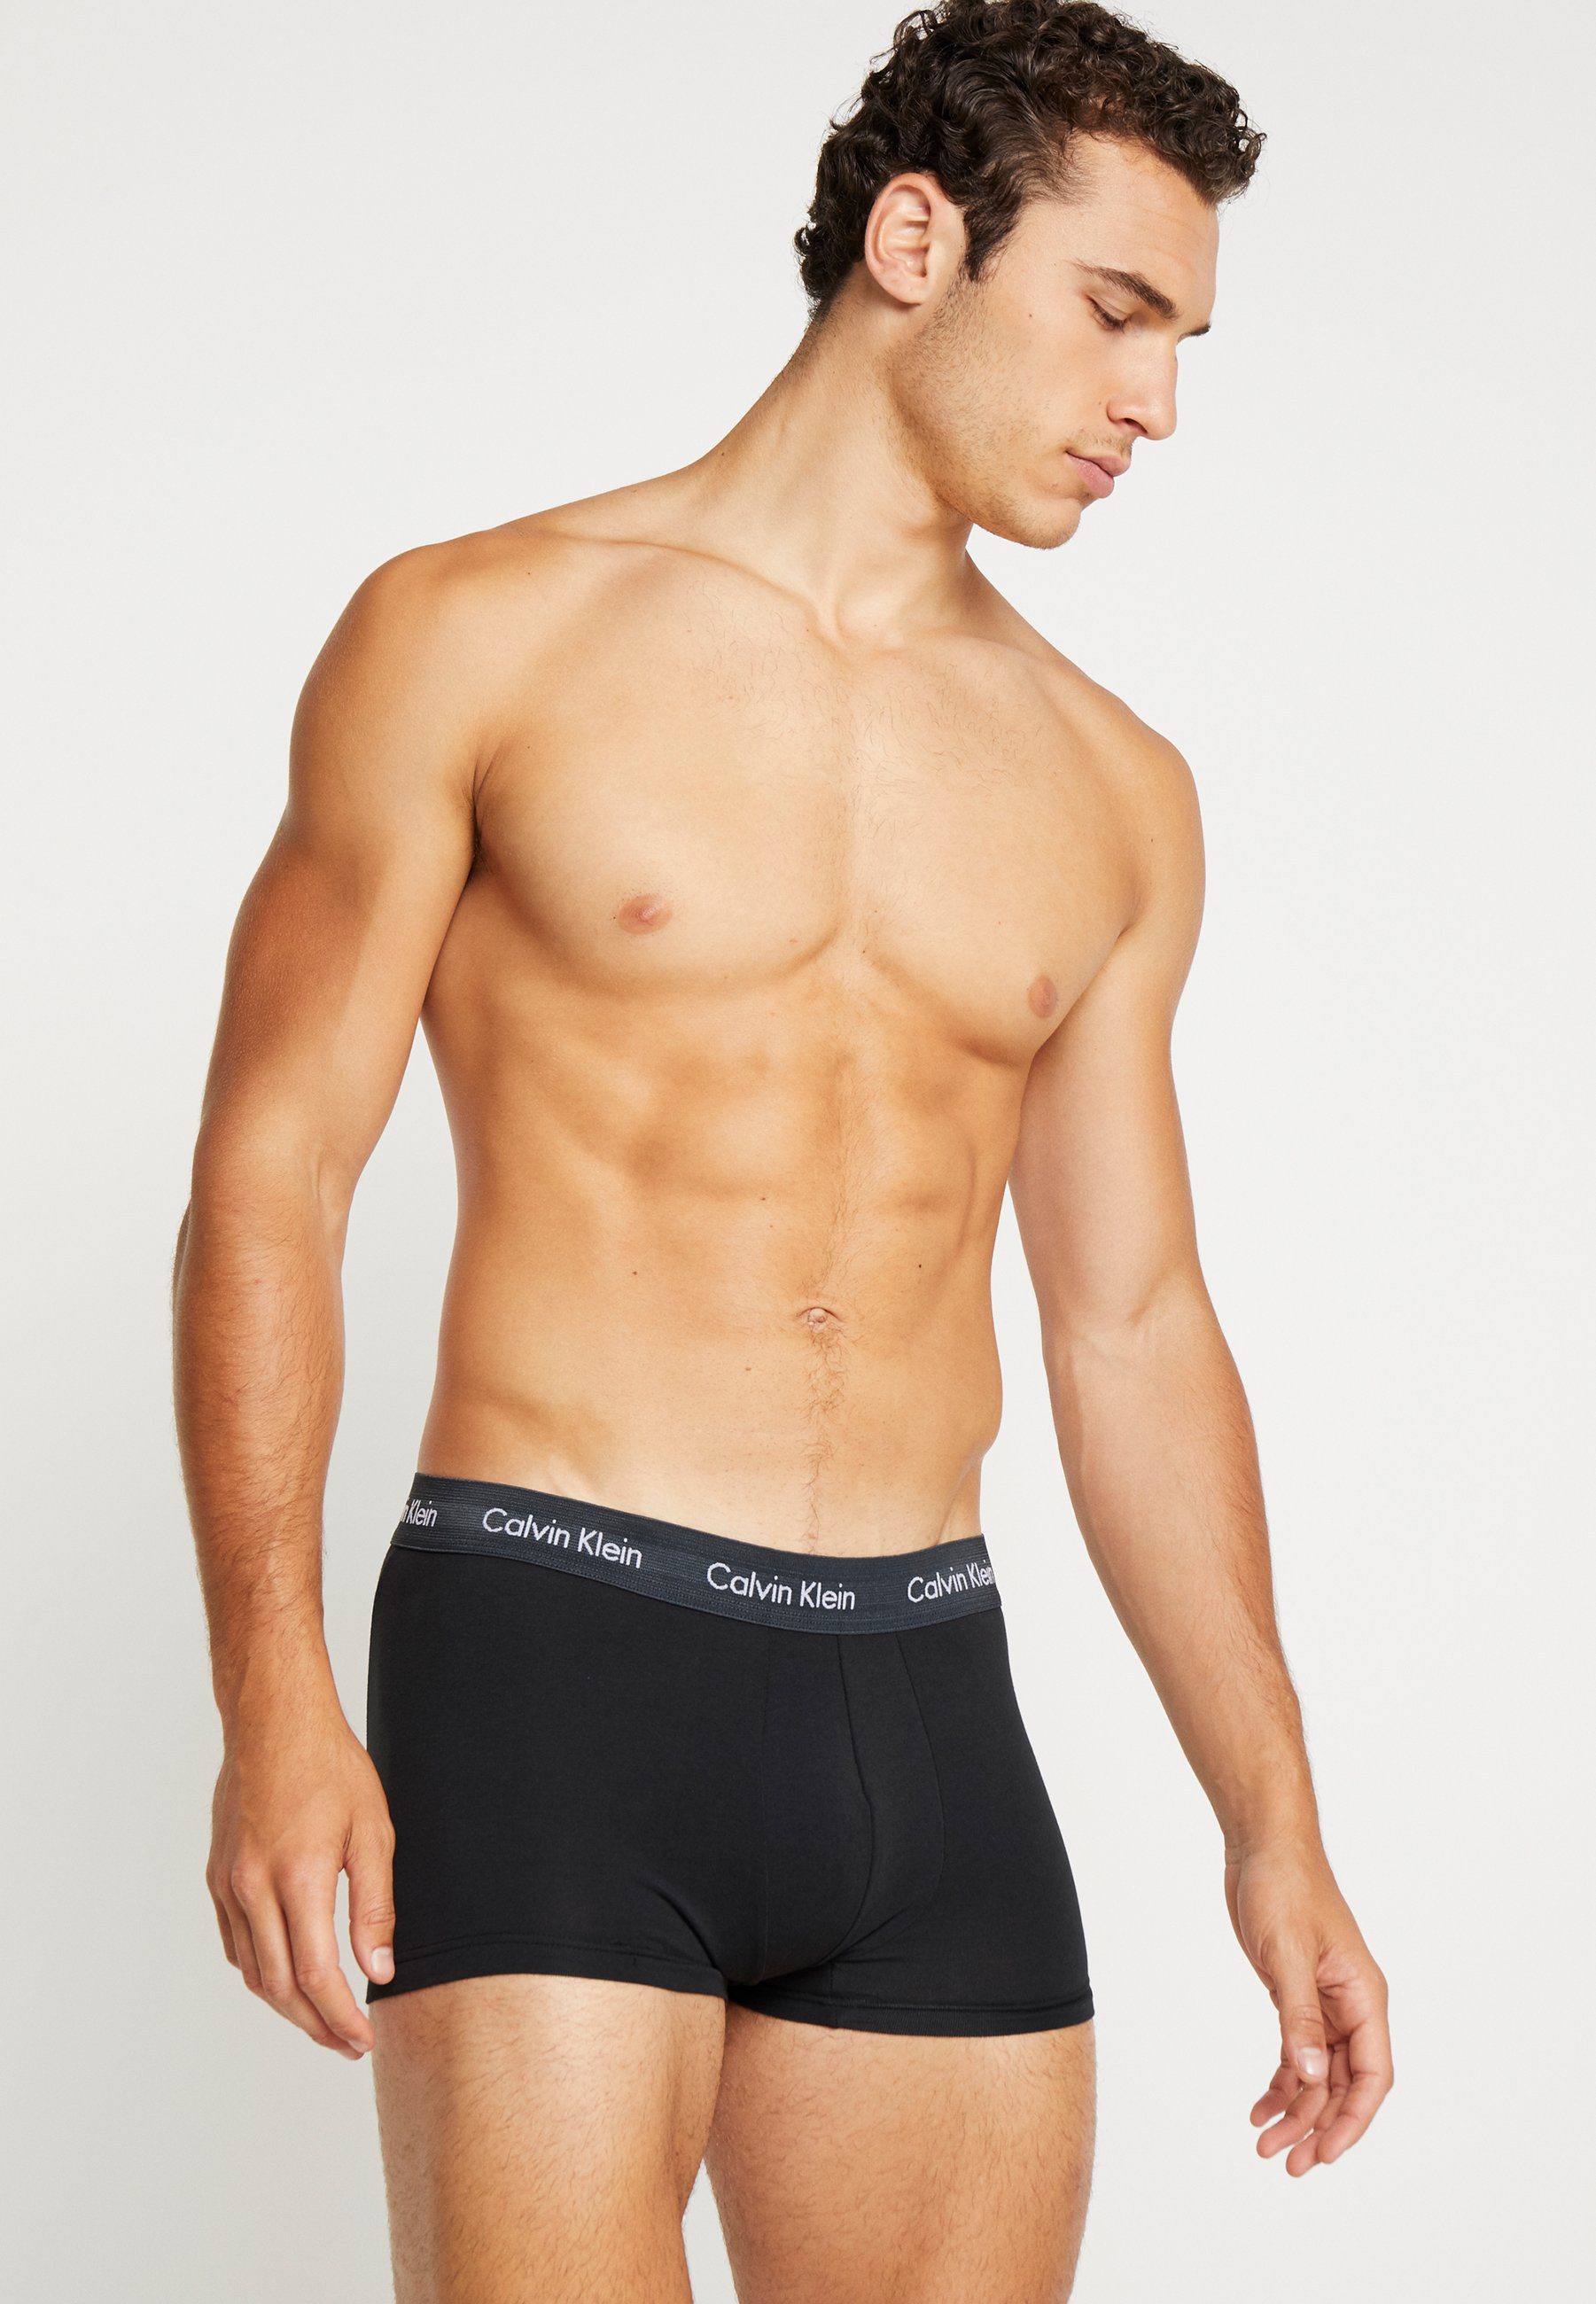 Klein PackShorty Calvin 3 Black Underwear Stretch WDH9E2IY